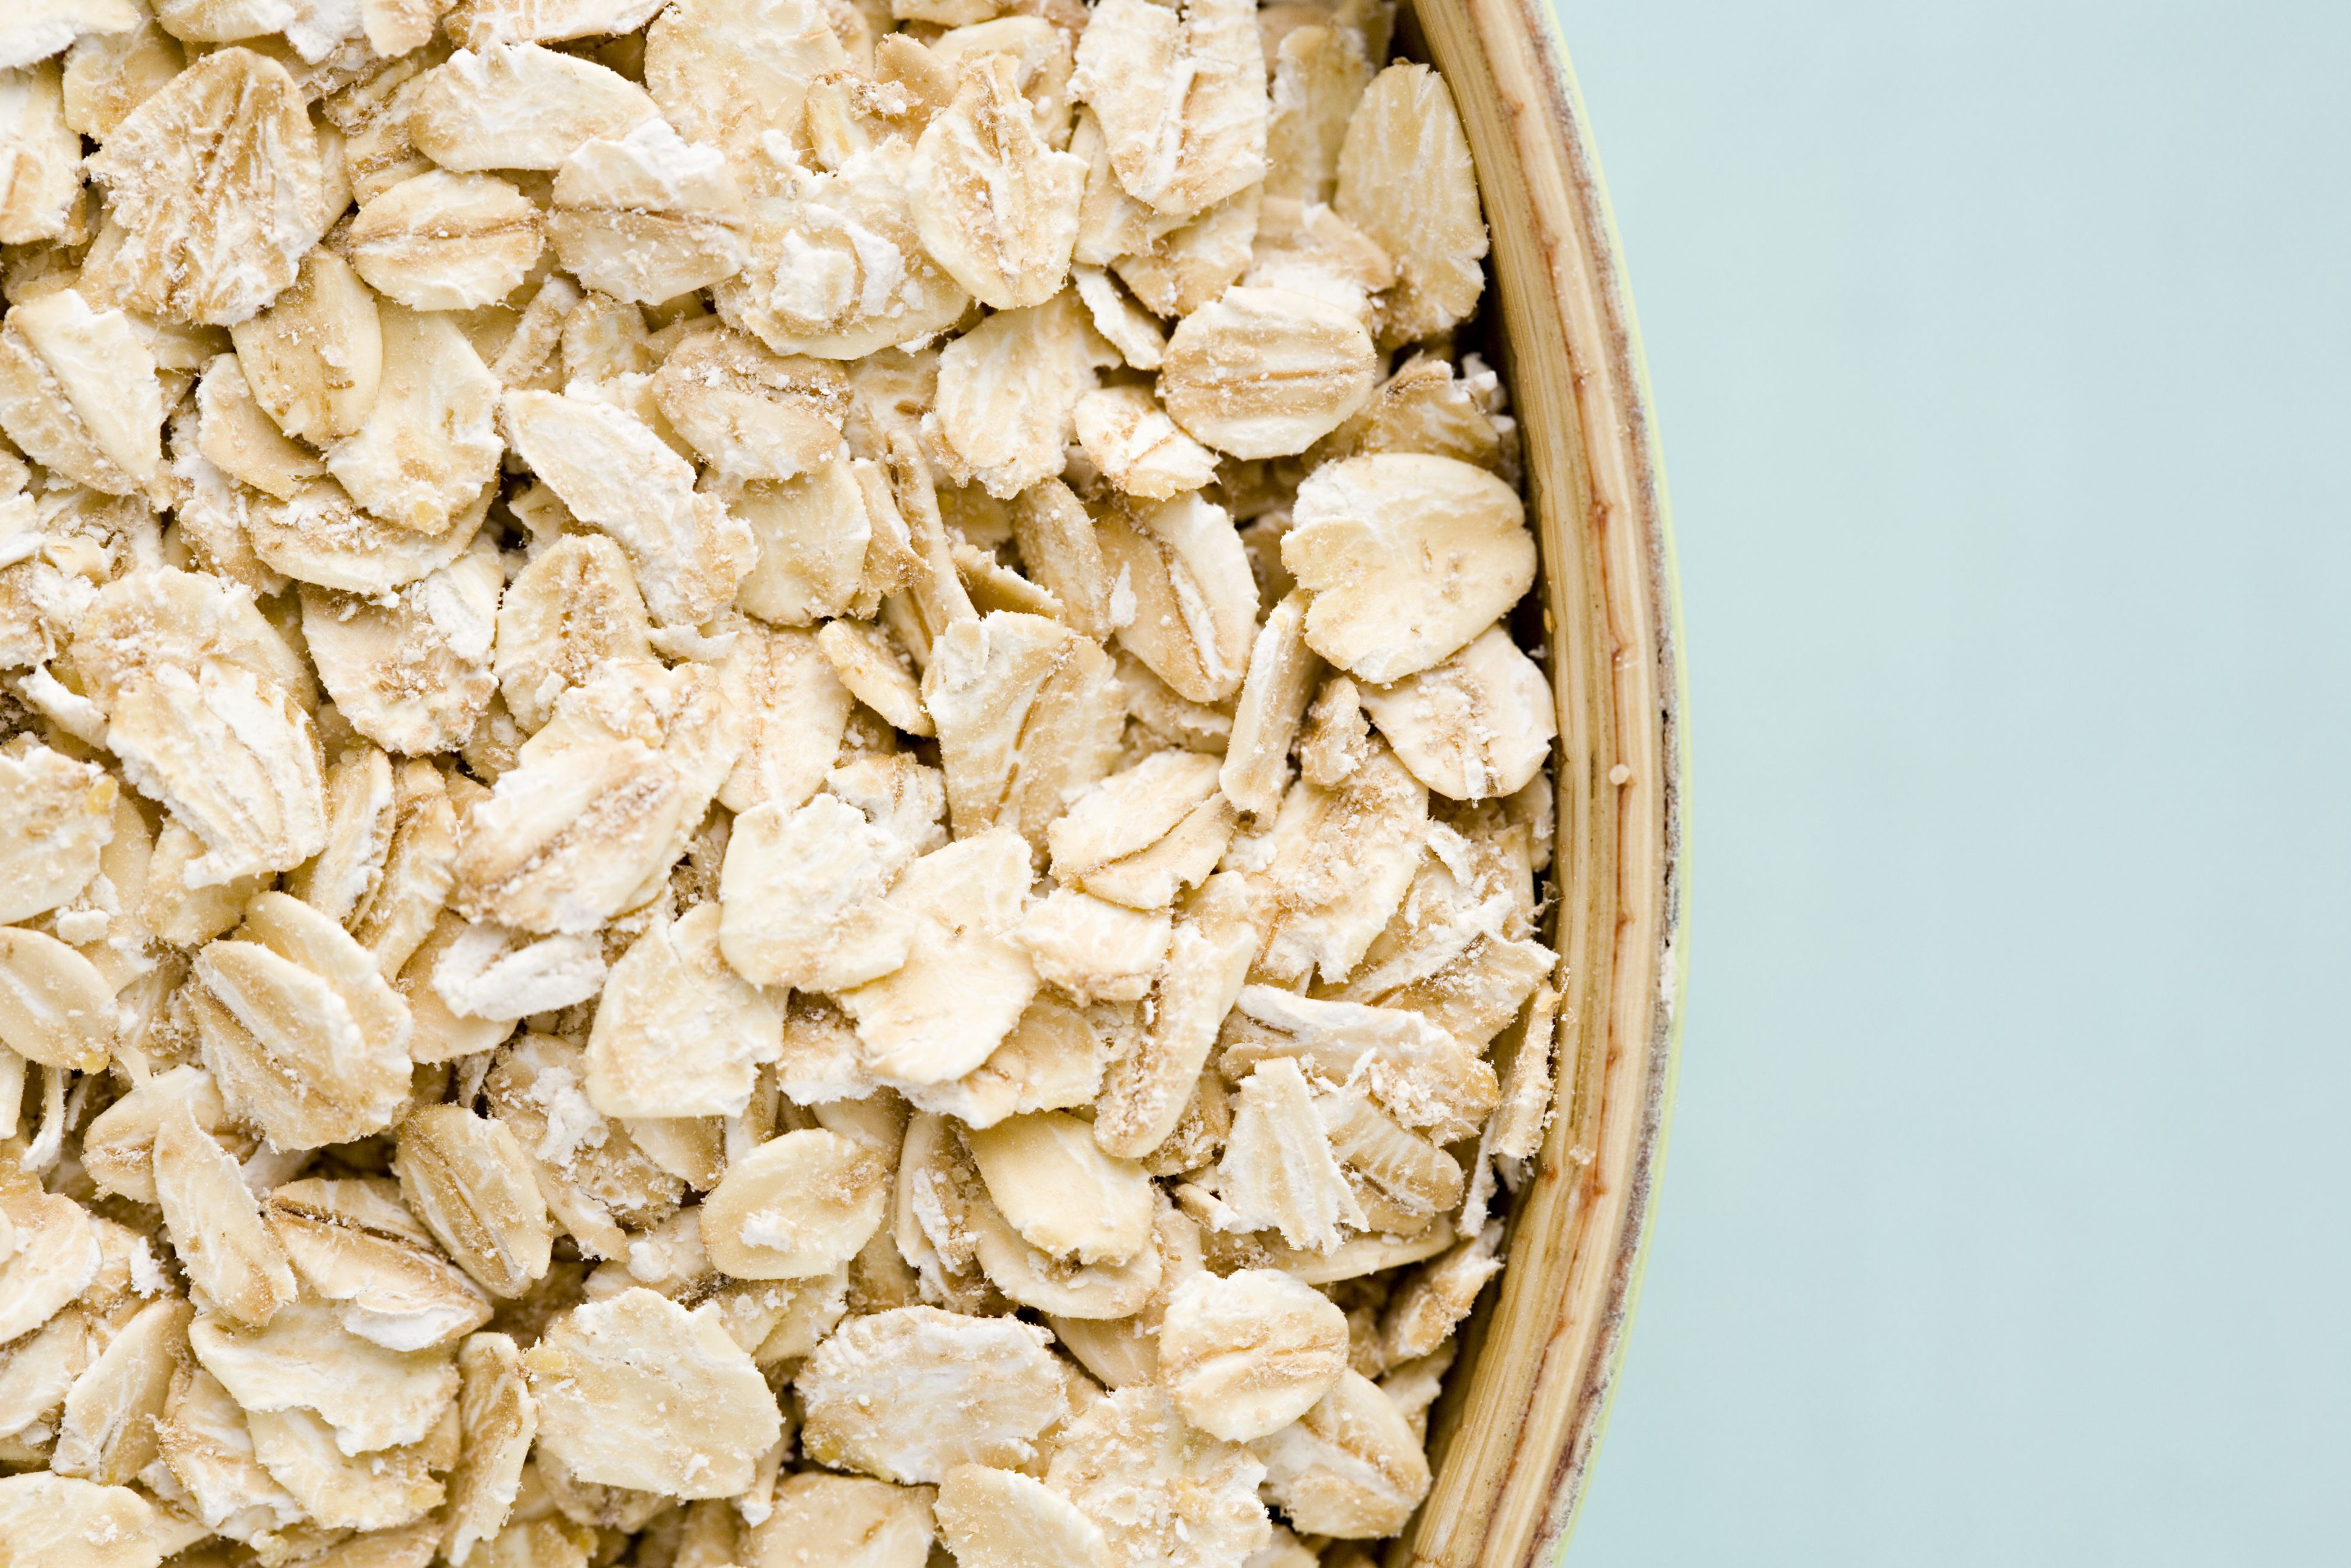 is oatmeal ok to eat on paleo diet